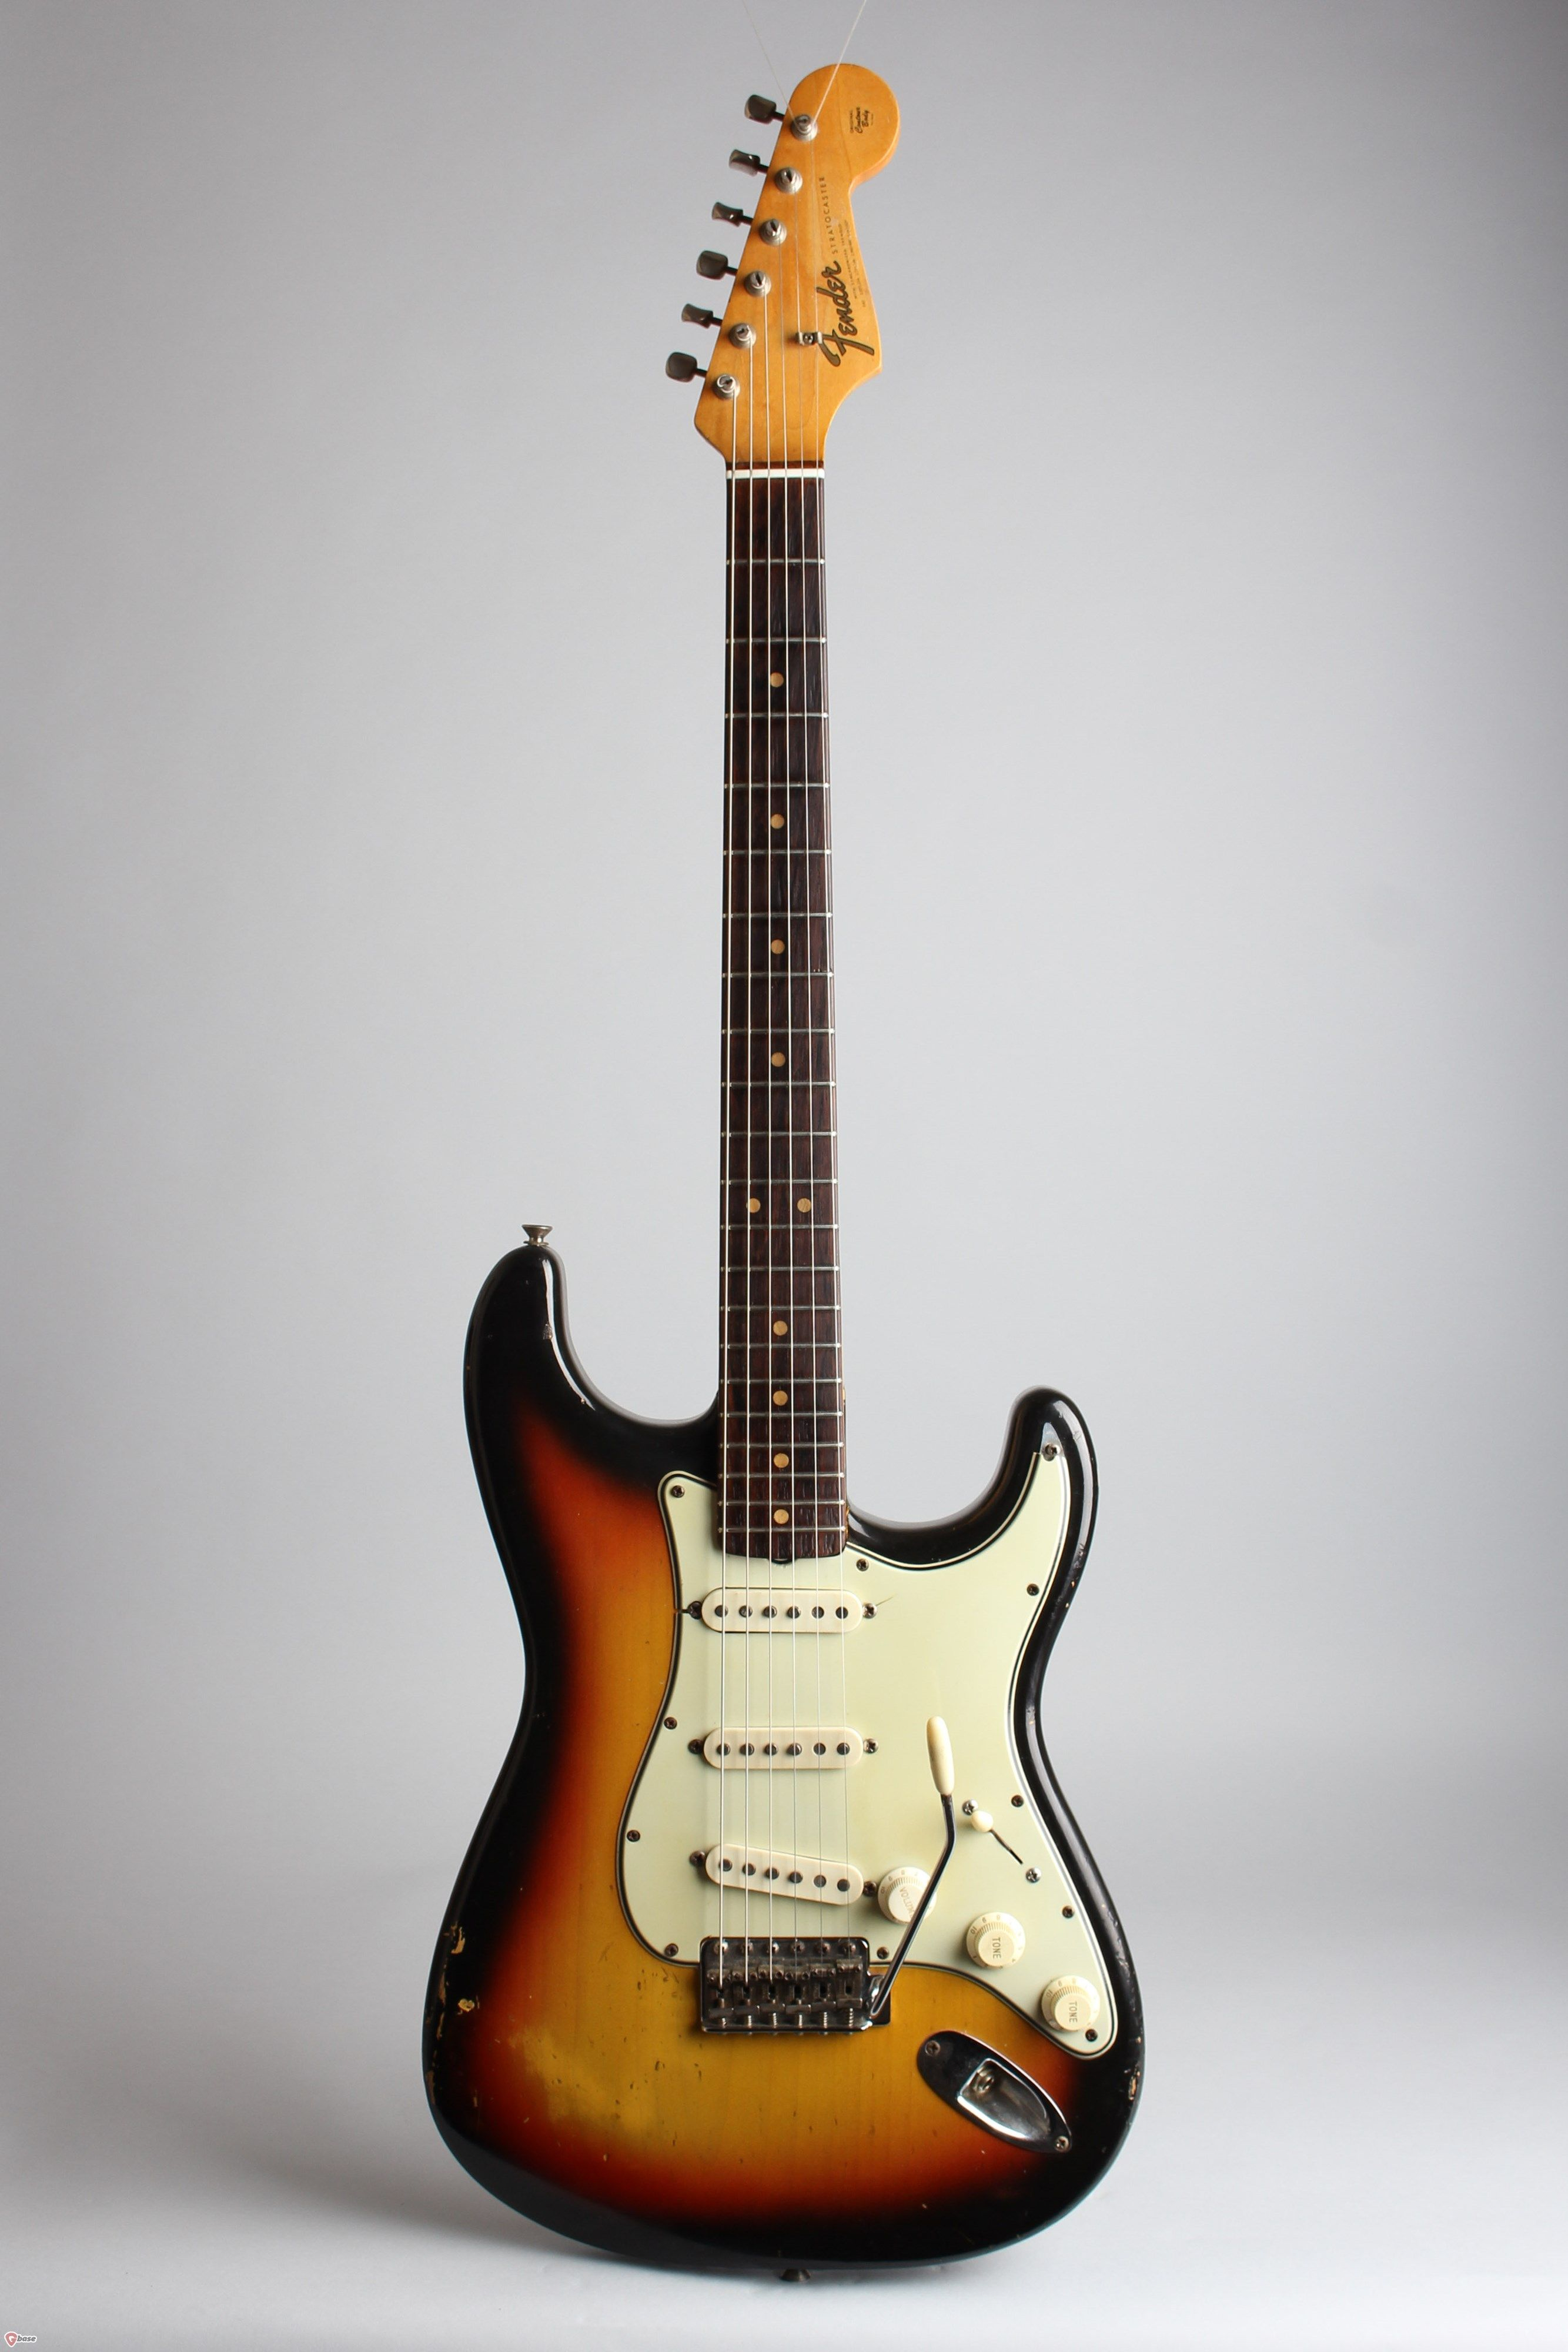 1964 Fender Stratocaster Guitar Vintage Guitars To String A Guitarguitar Technique Electric Acoustic Music Amp Cool